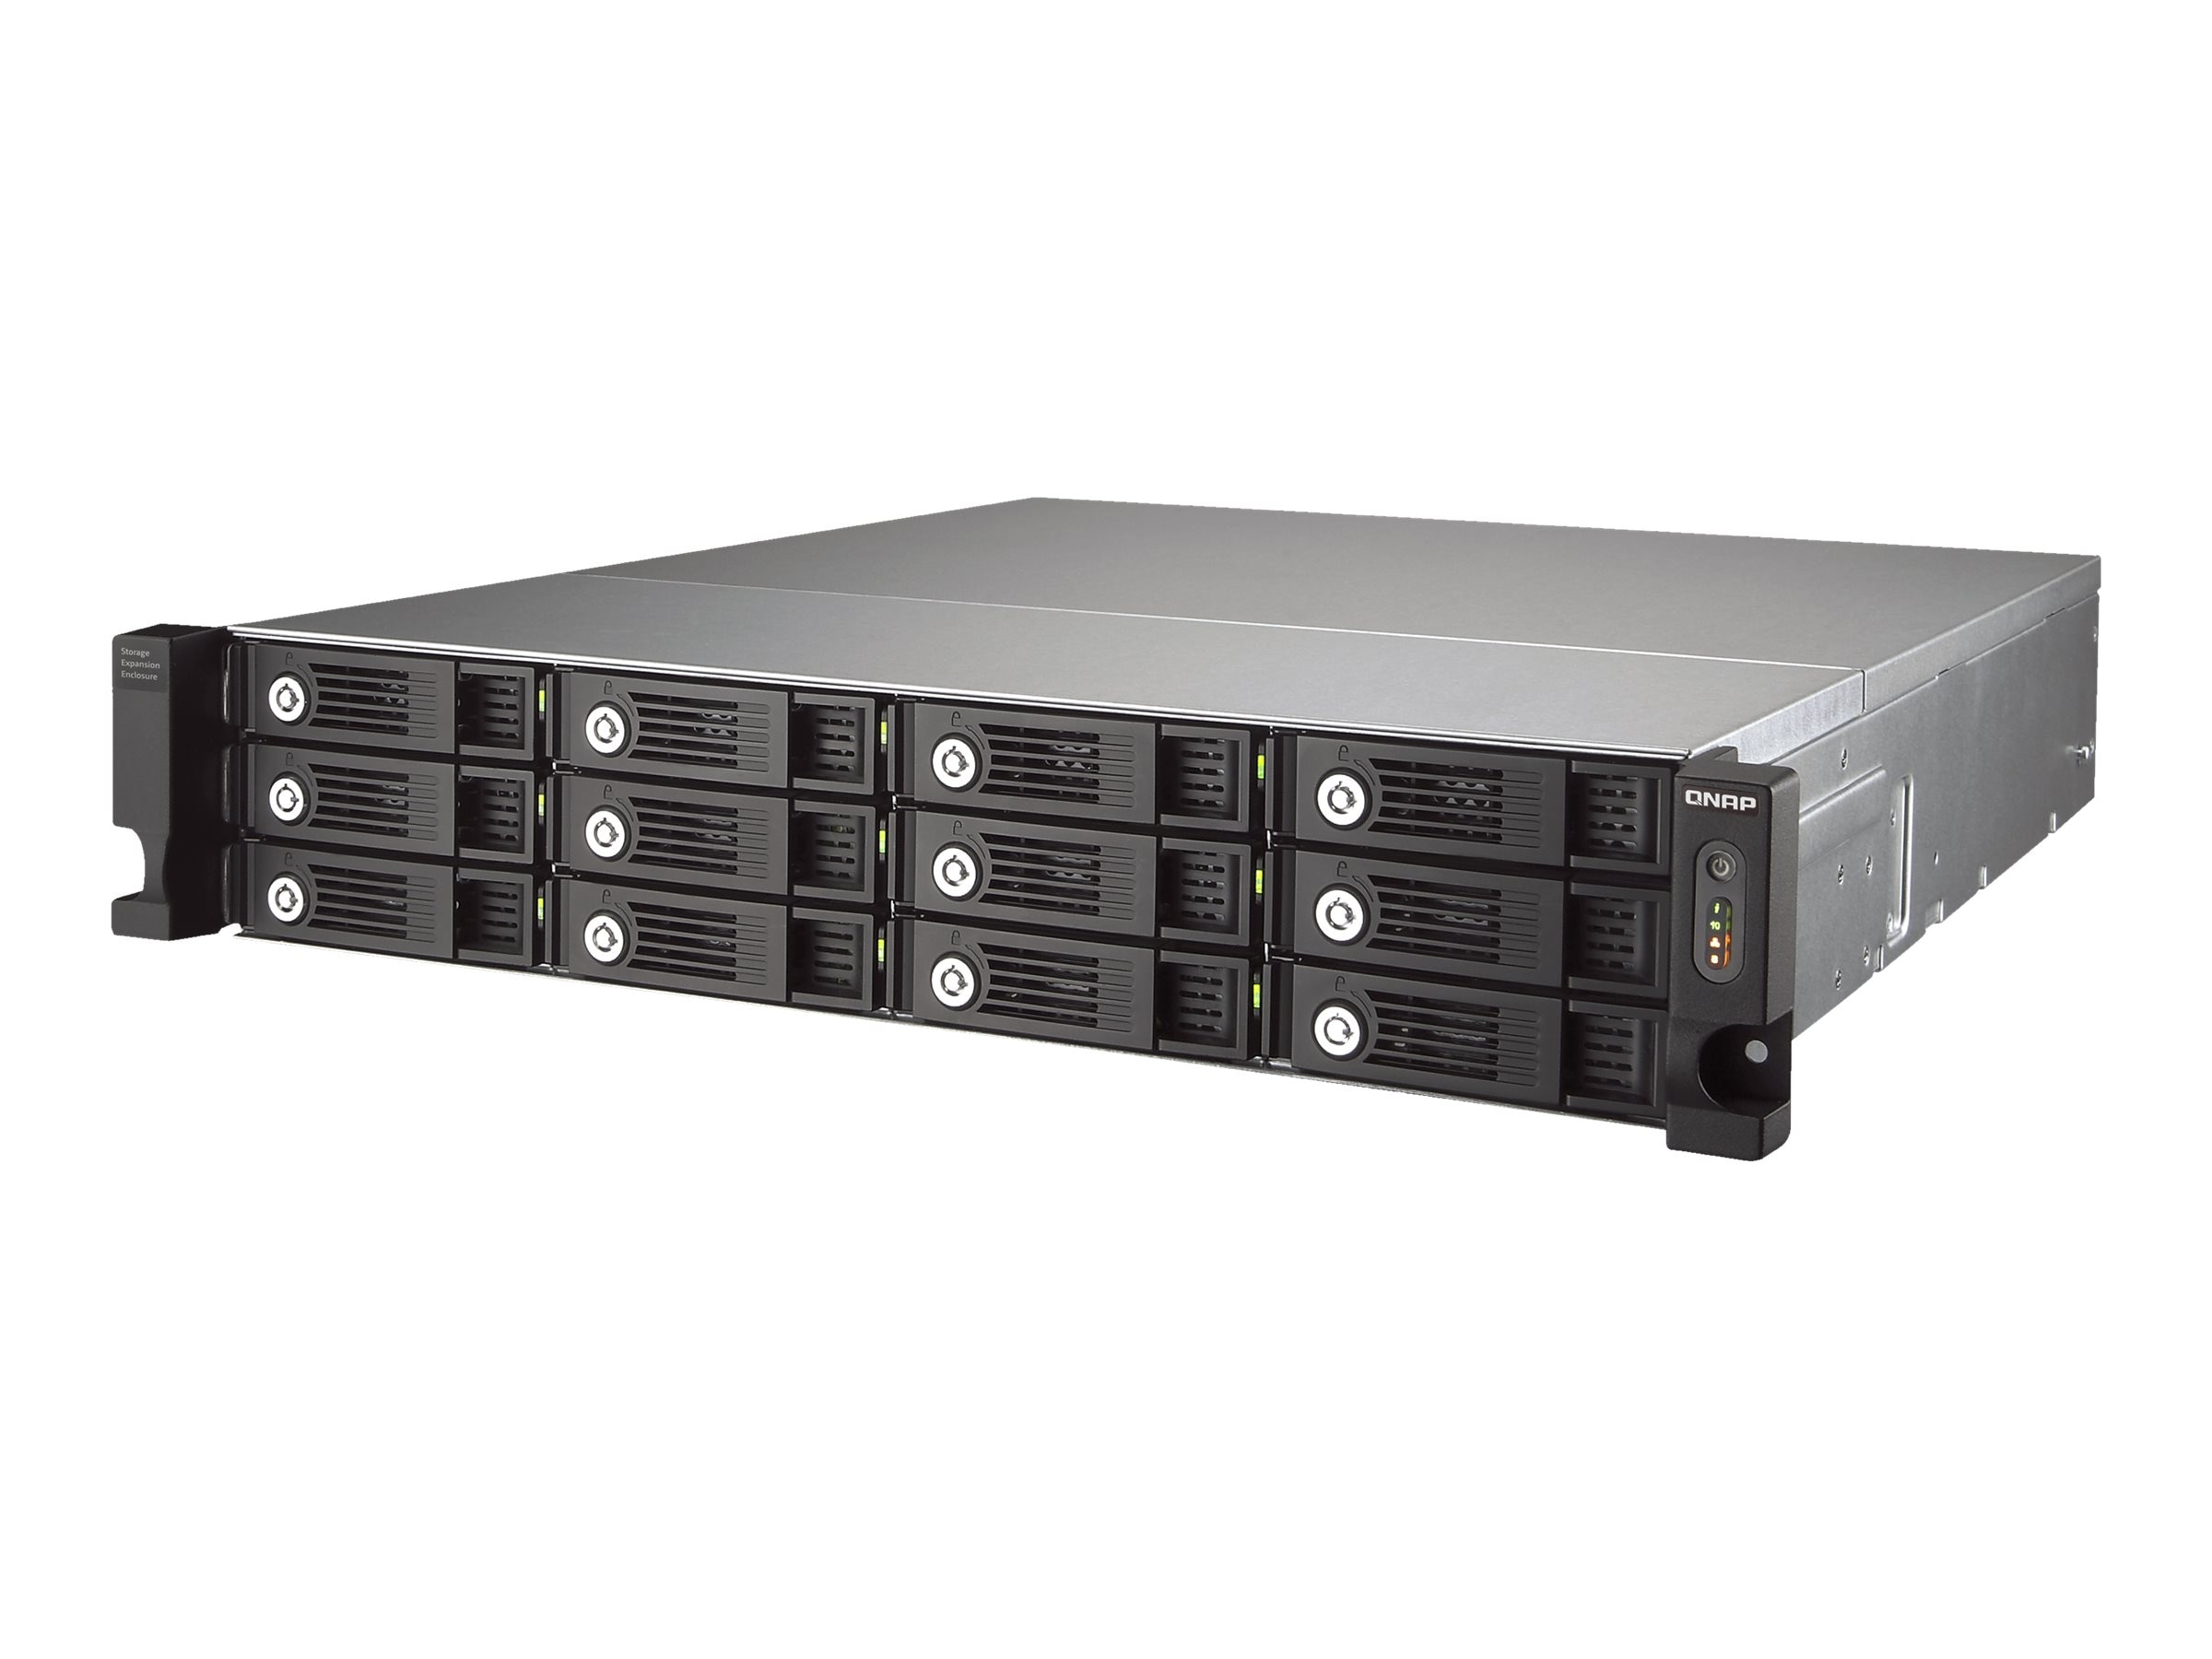 Qnap 12-Bay SATA 6Gb s Rack Expansion Enclosure, UX-1200U-RP-US, 18447071, Hard Drive Enclosures - Multiple